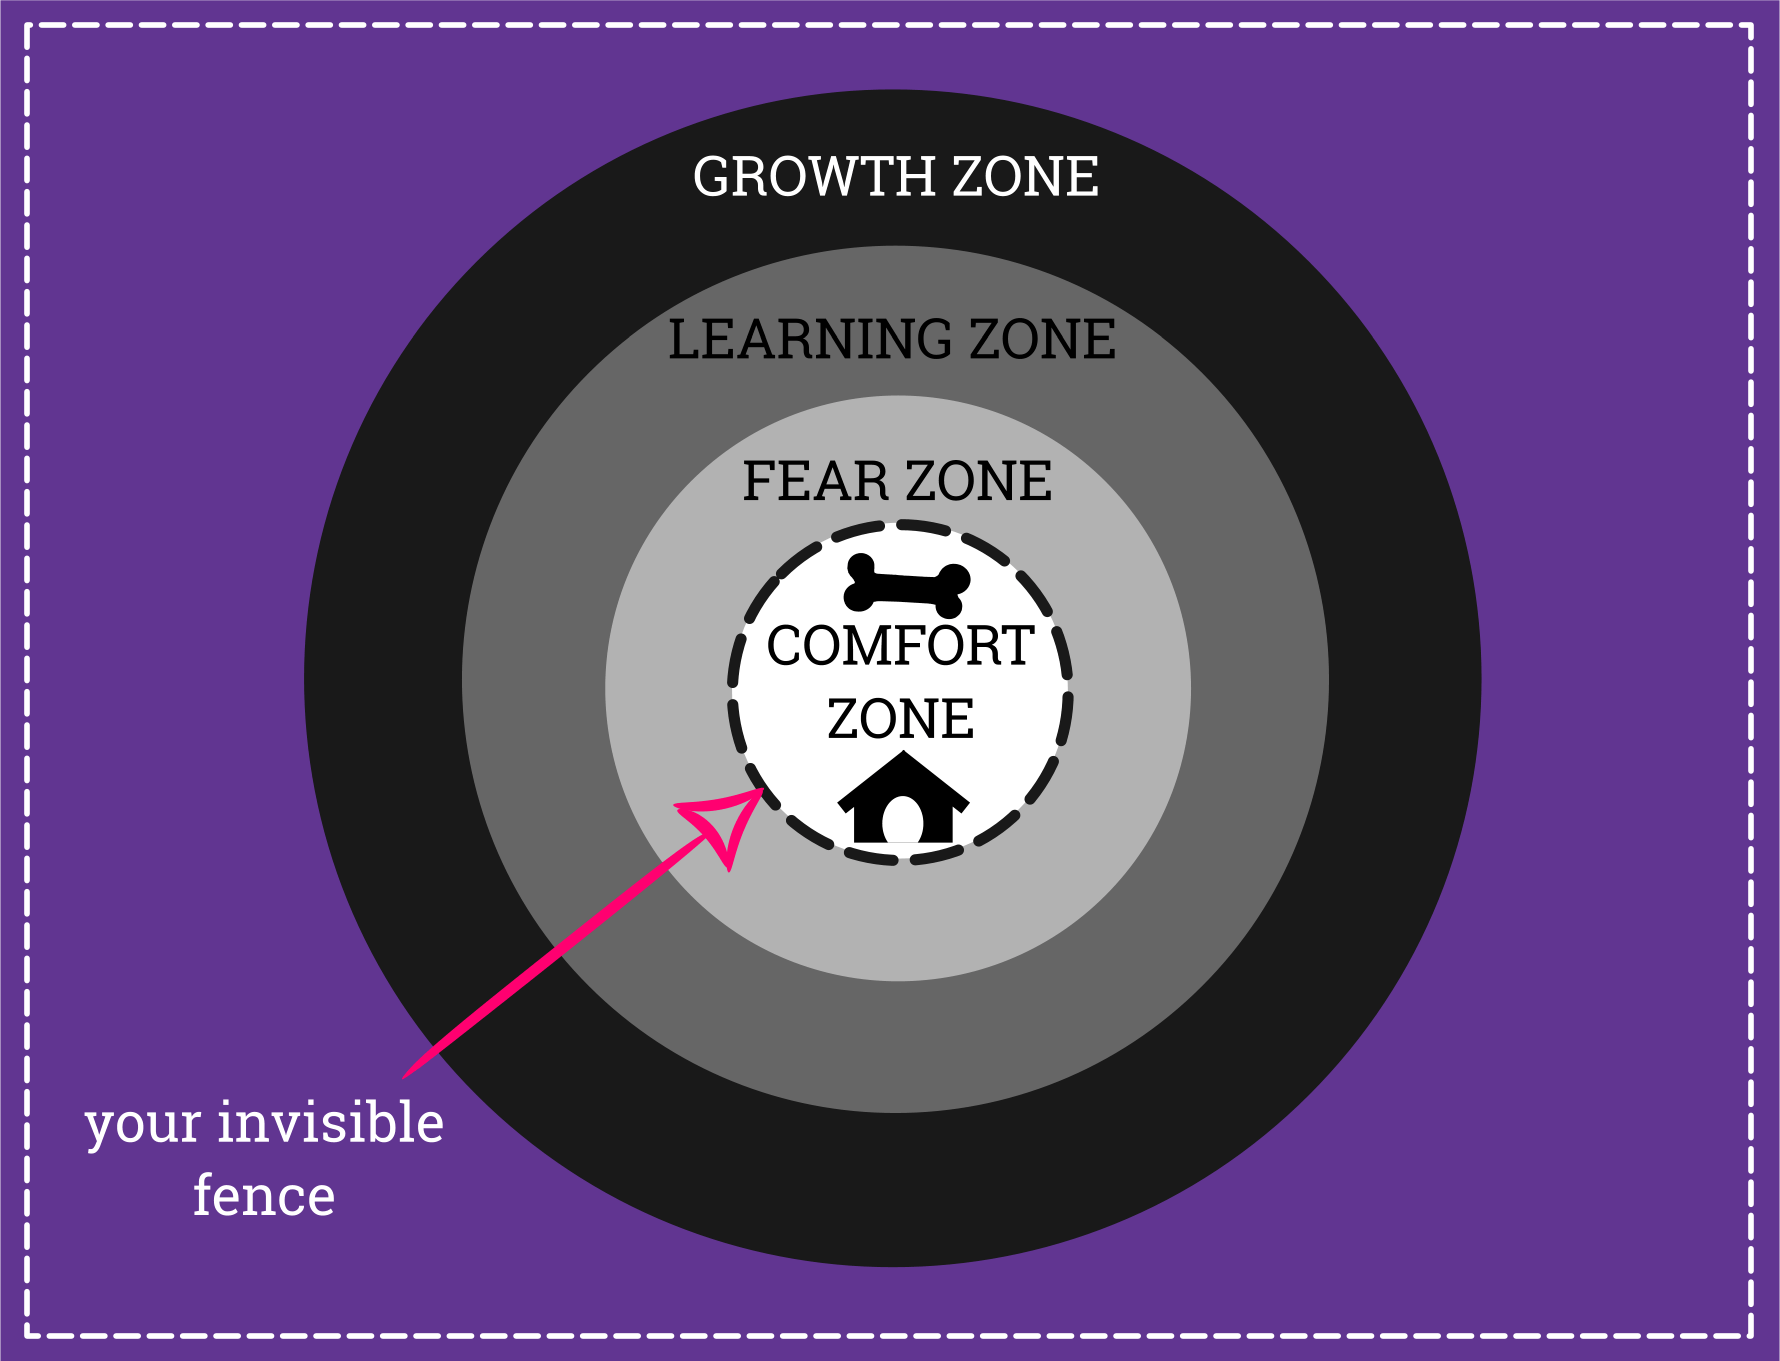 invisible fence-comfort zone